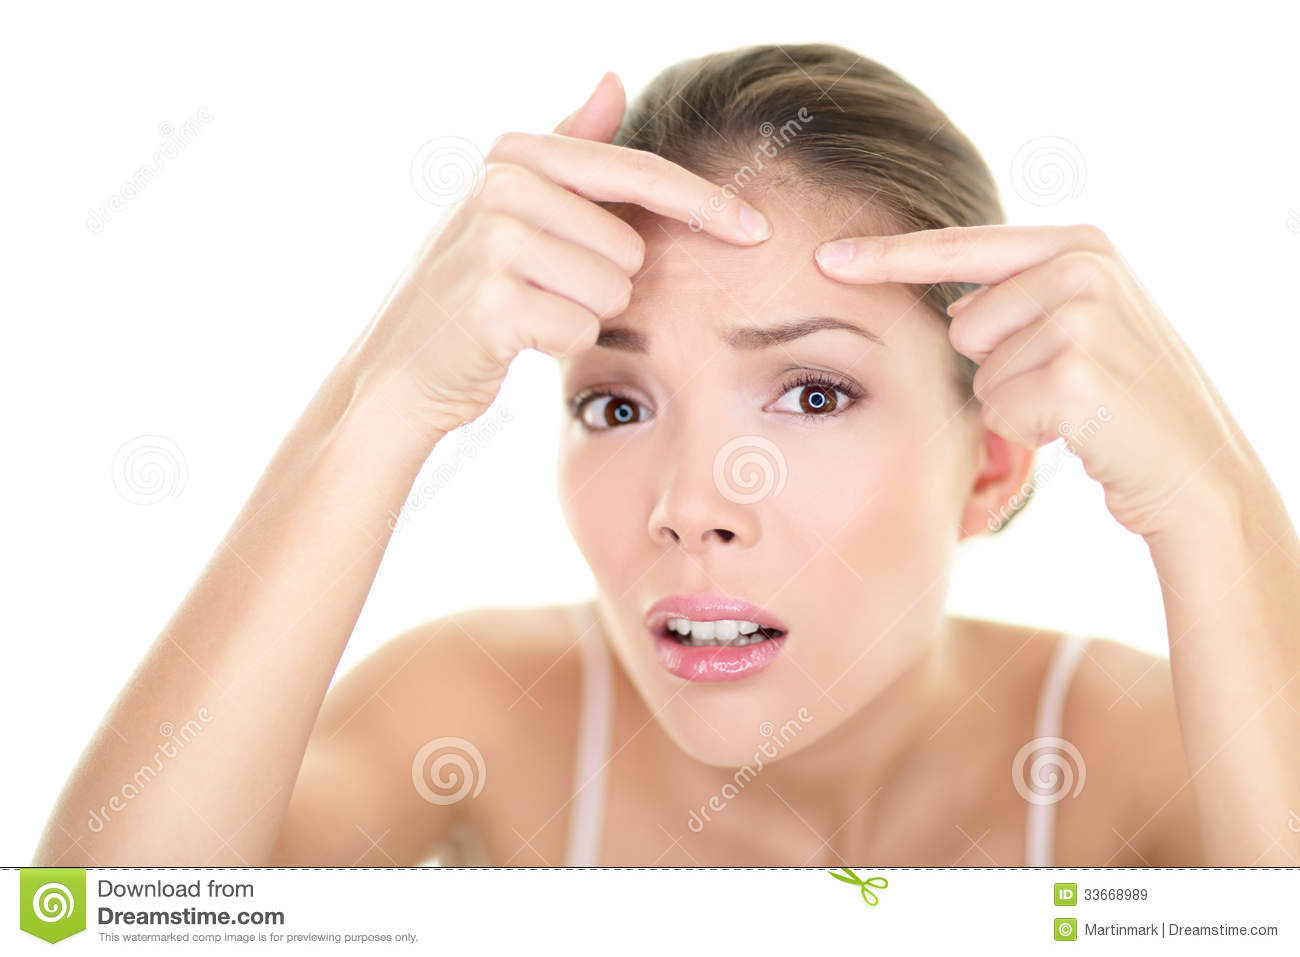 Download Acne Spot Pimple Spot Skin Care Girl Skin Problem Stock Image - Image of face, female: 33668989